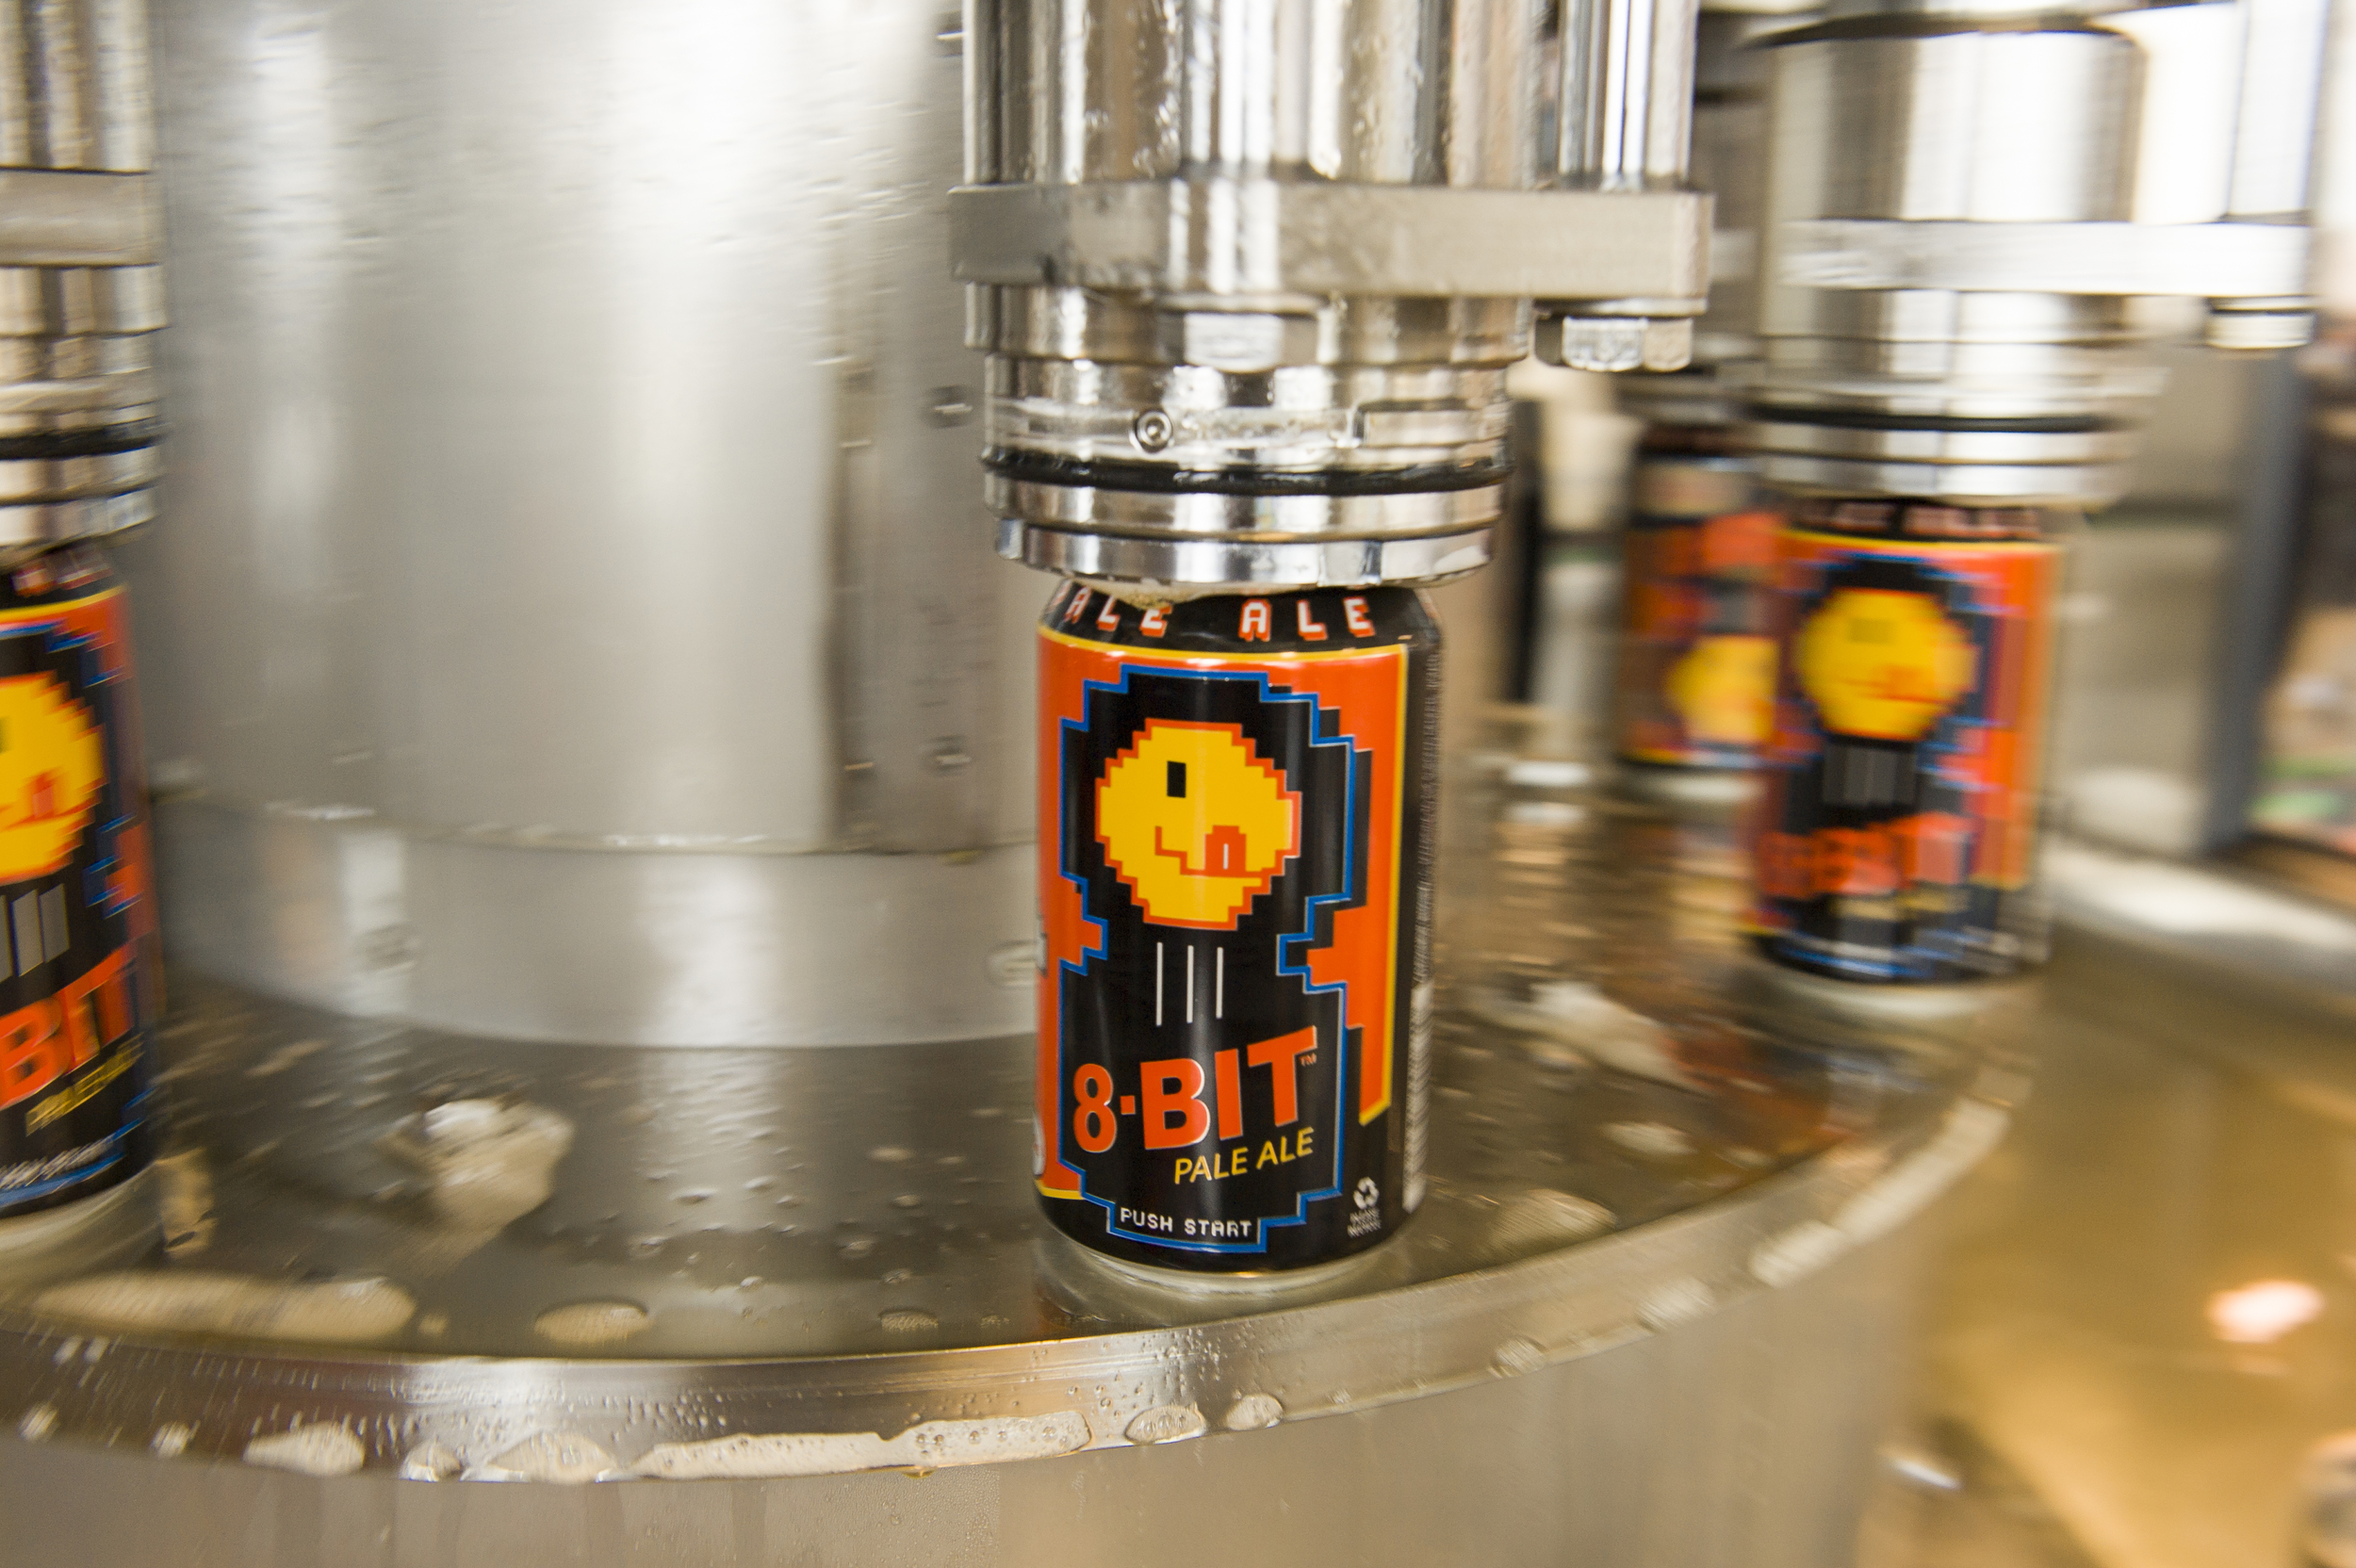 8-bit Pale Ale getting canned